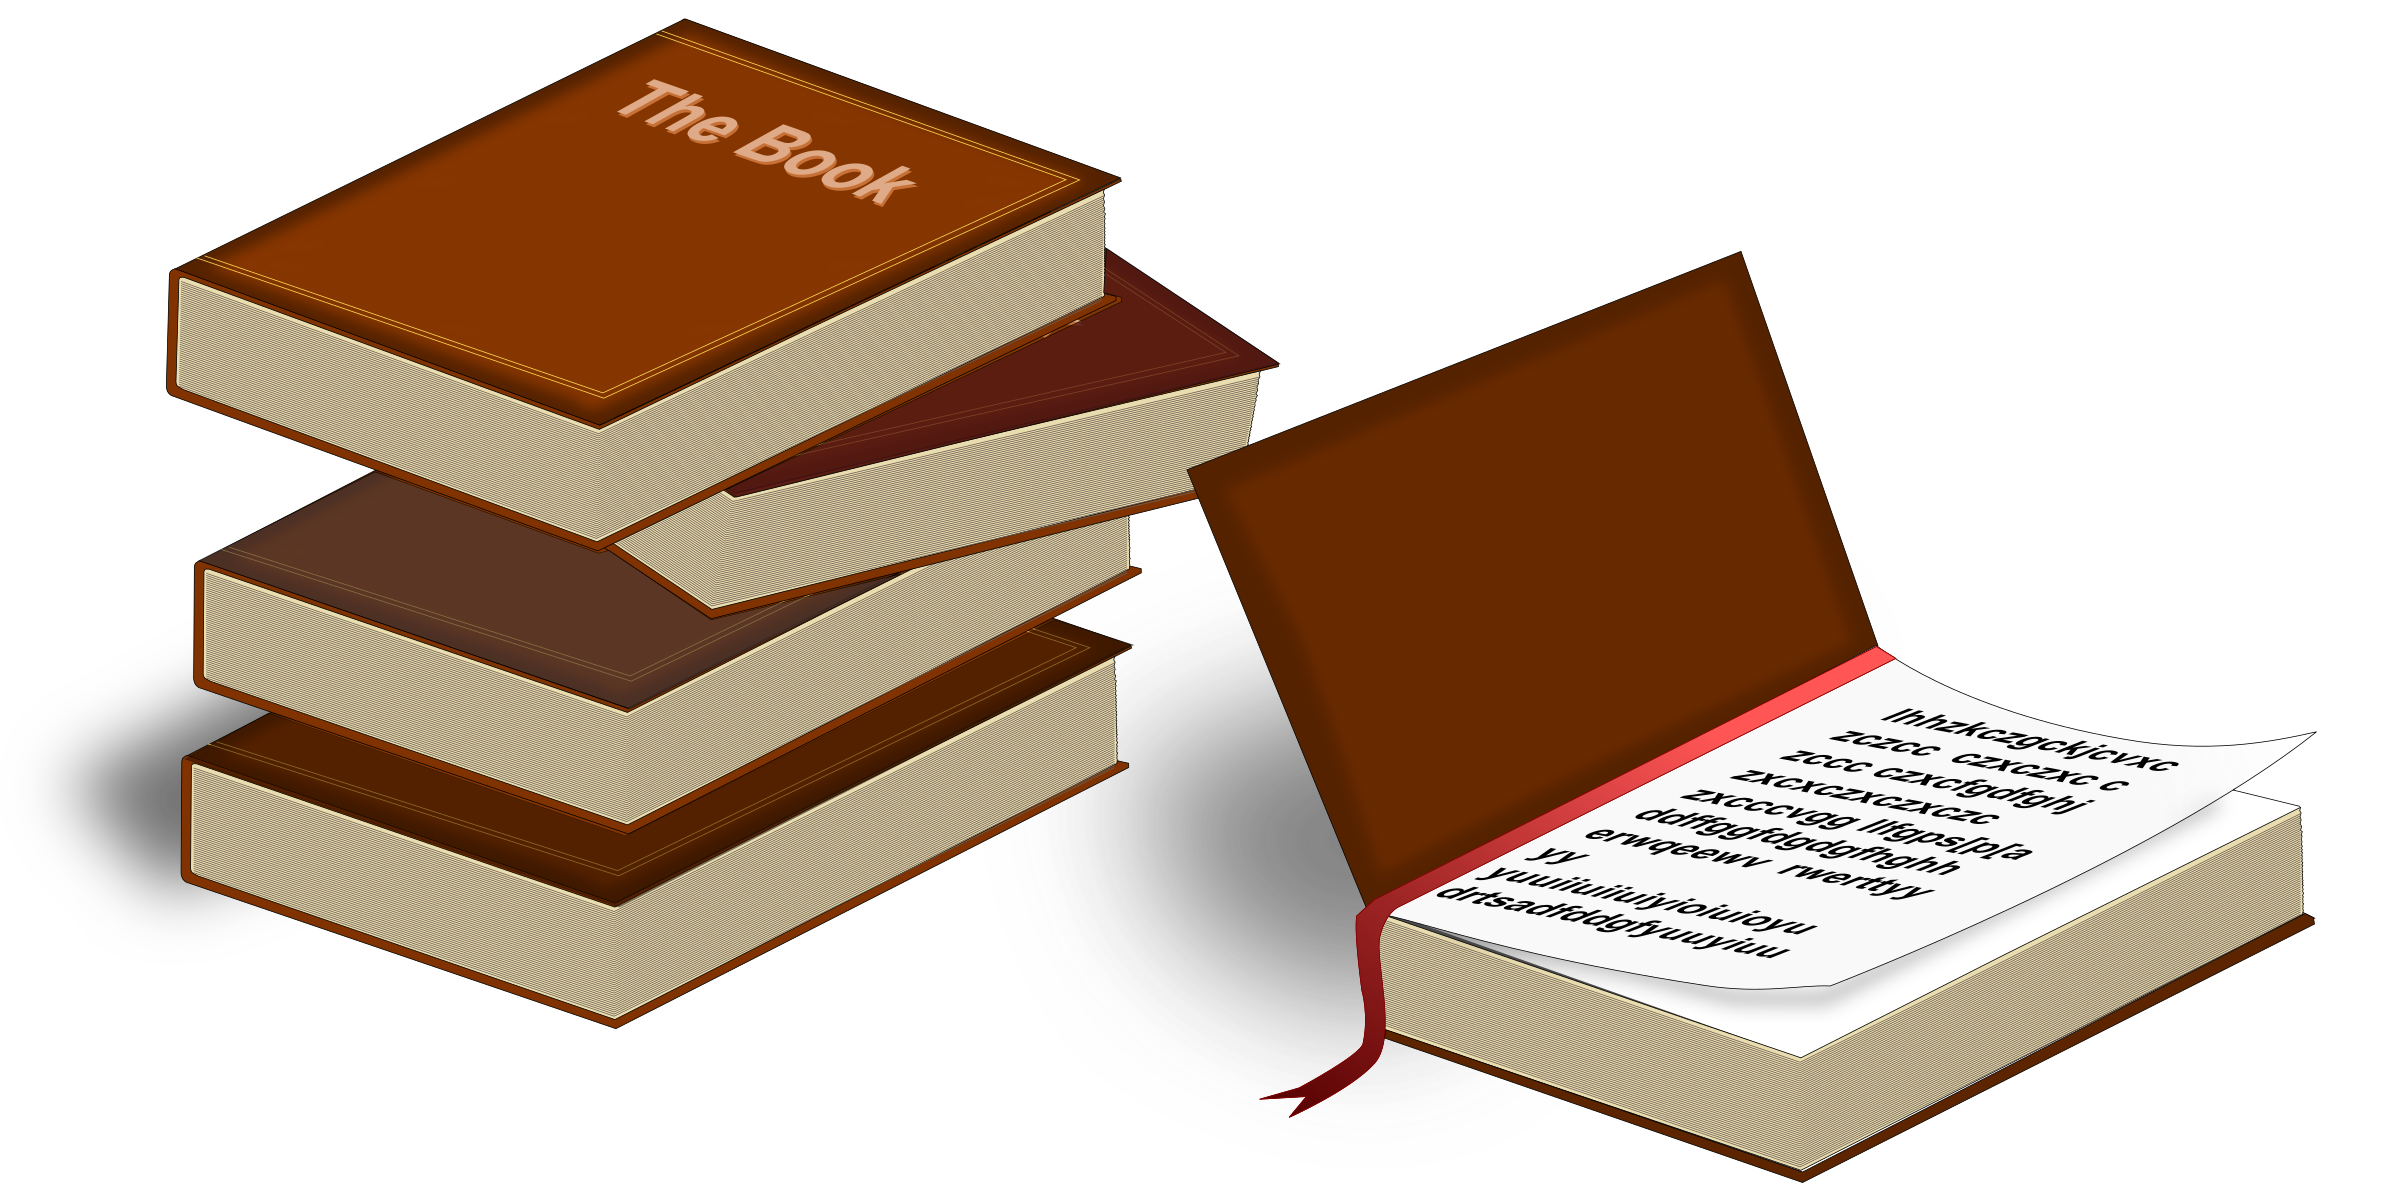 Books icons png free. Clipart book orange